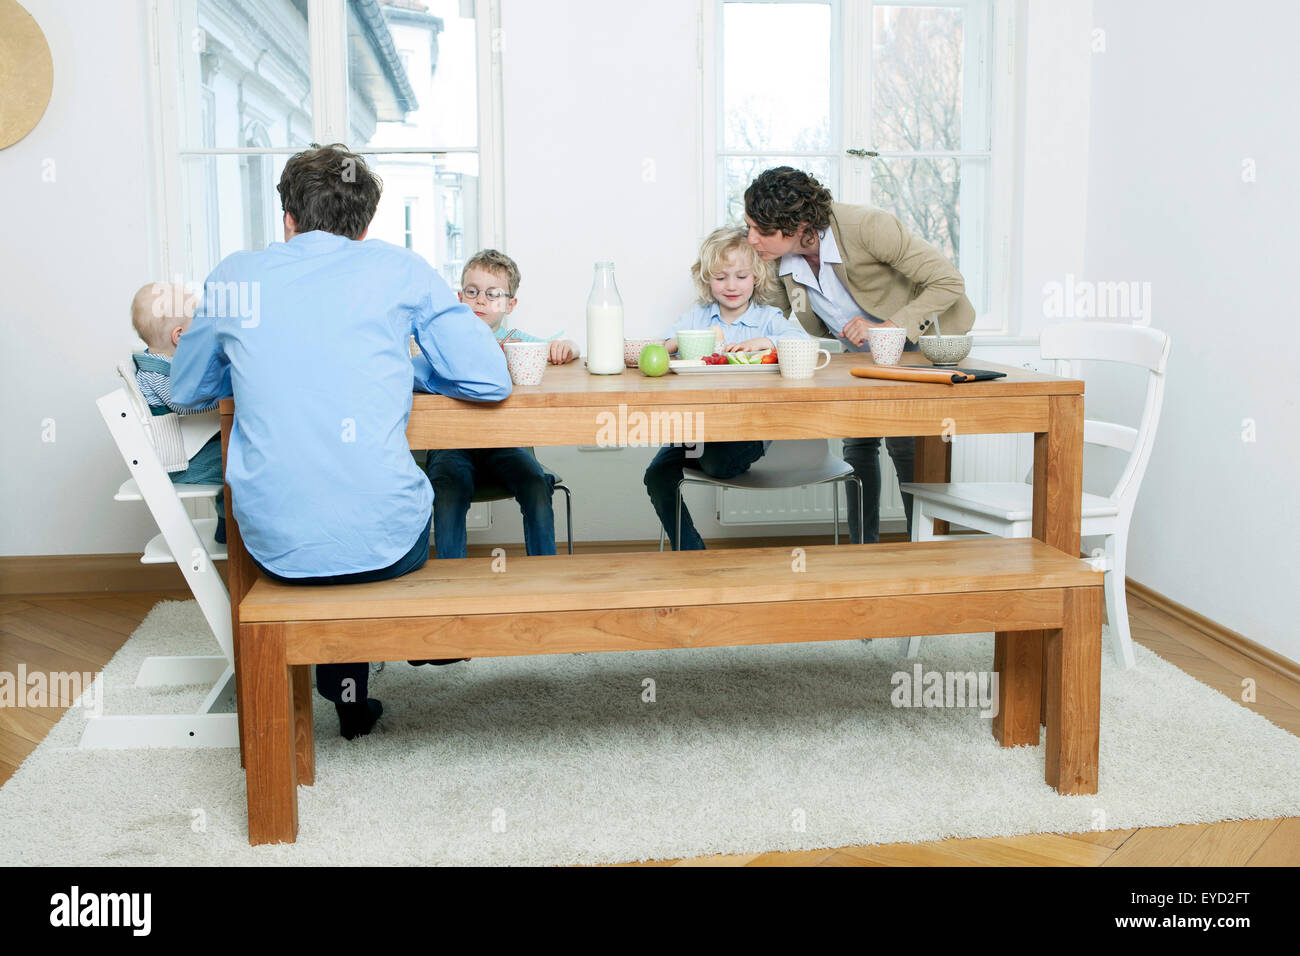 Family at breakfast table in kitchen - Stock Image